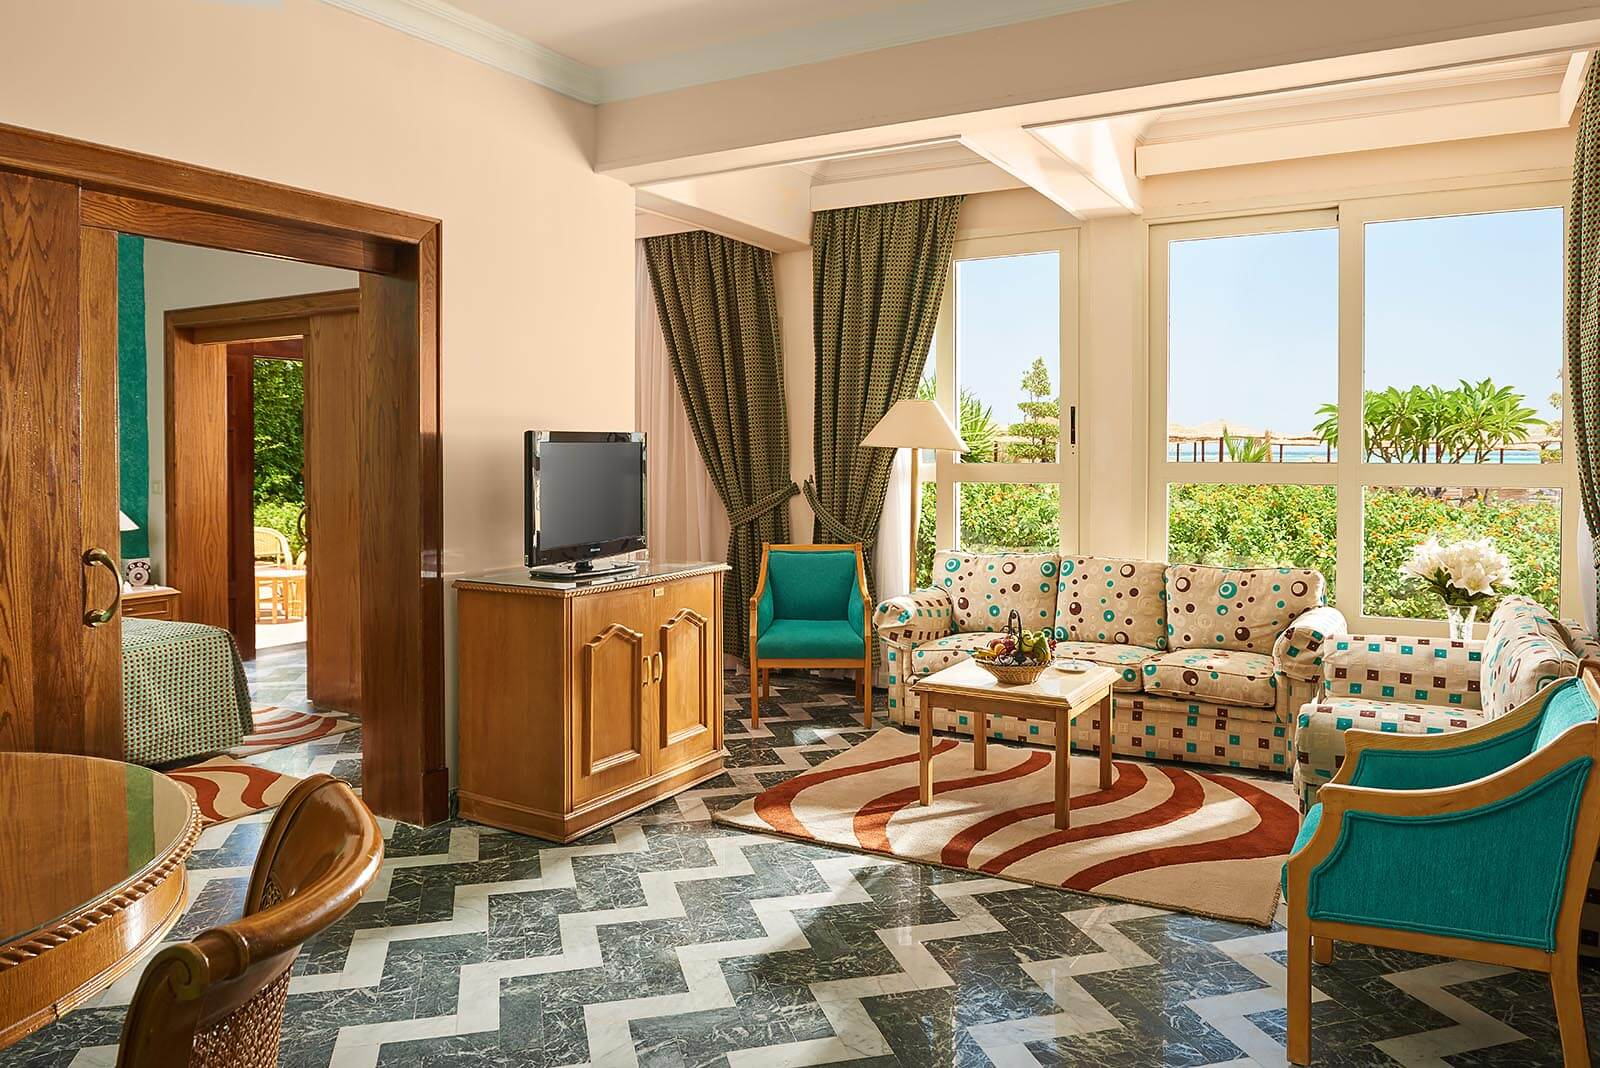 Junior Suite - Sea star beau rivage